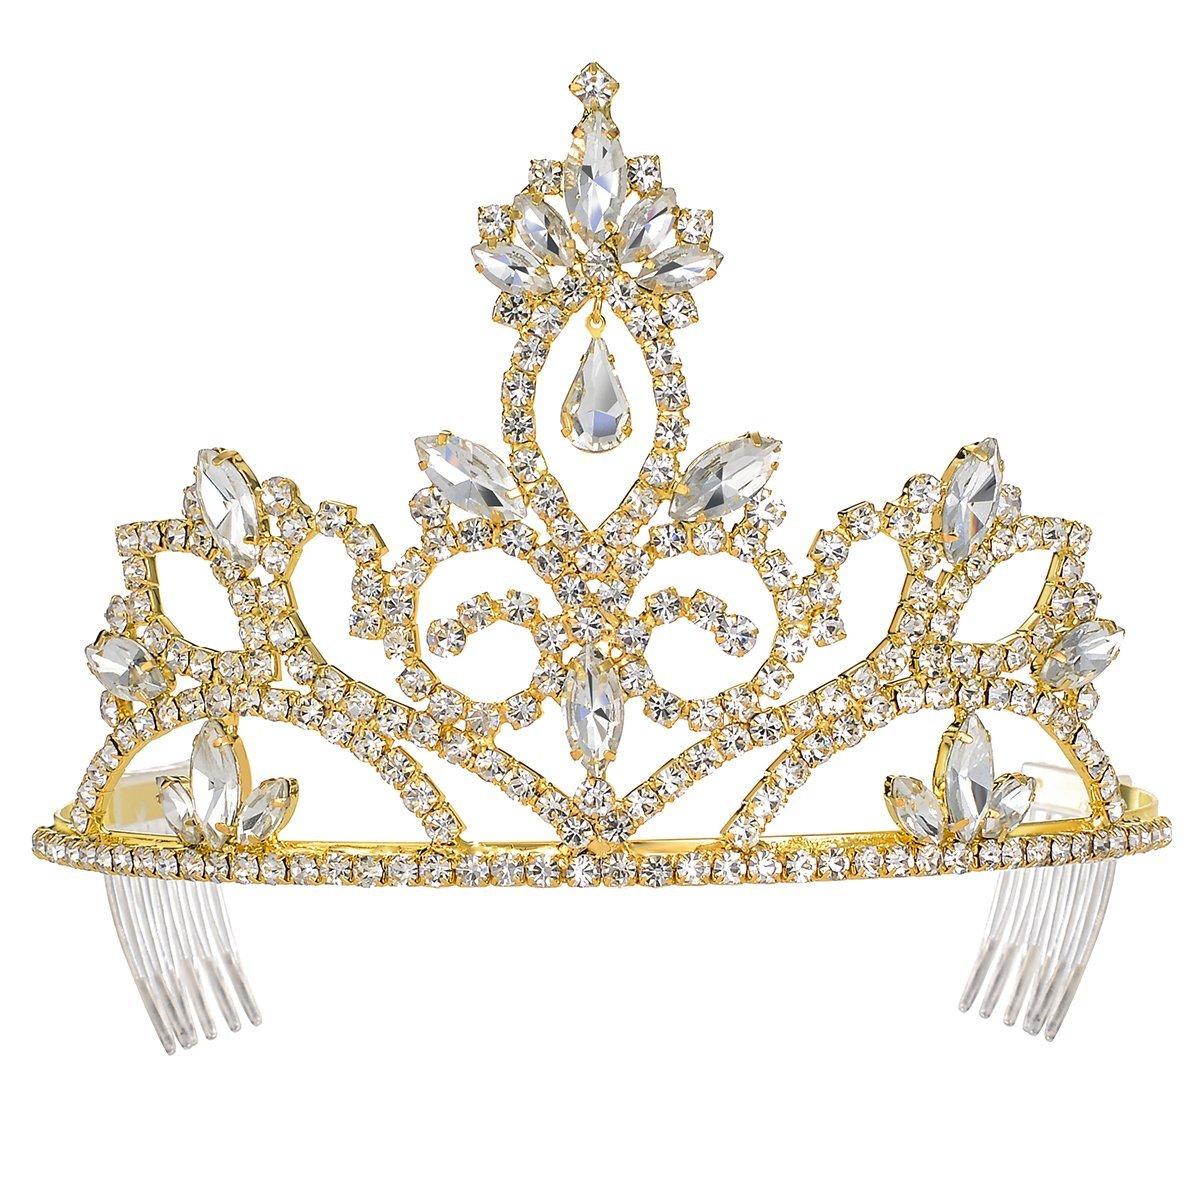 DcZeRong Gold Tiara Crown Prom Crown Gold Pageant Tiaras Gold Rhinestone Tiaras Gold Prom Tiaras